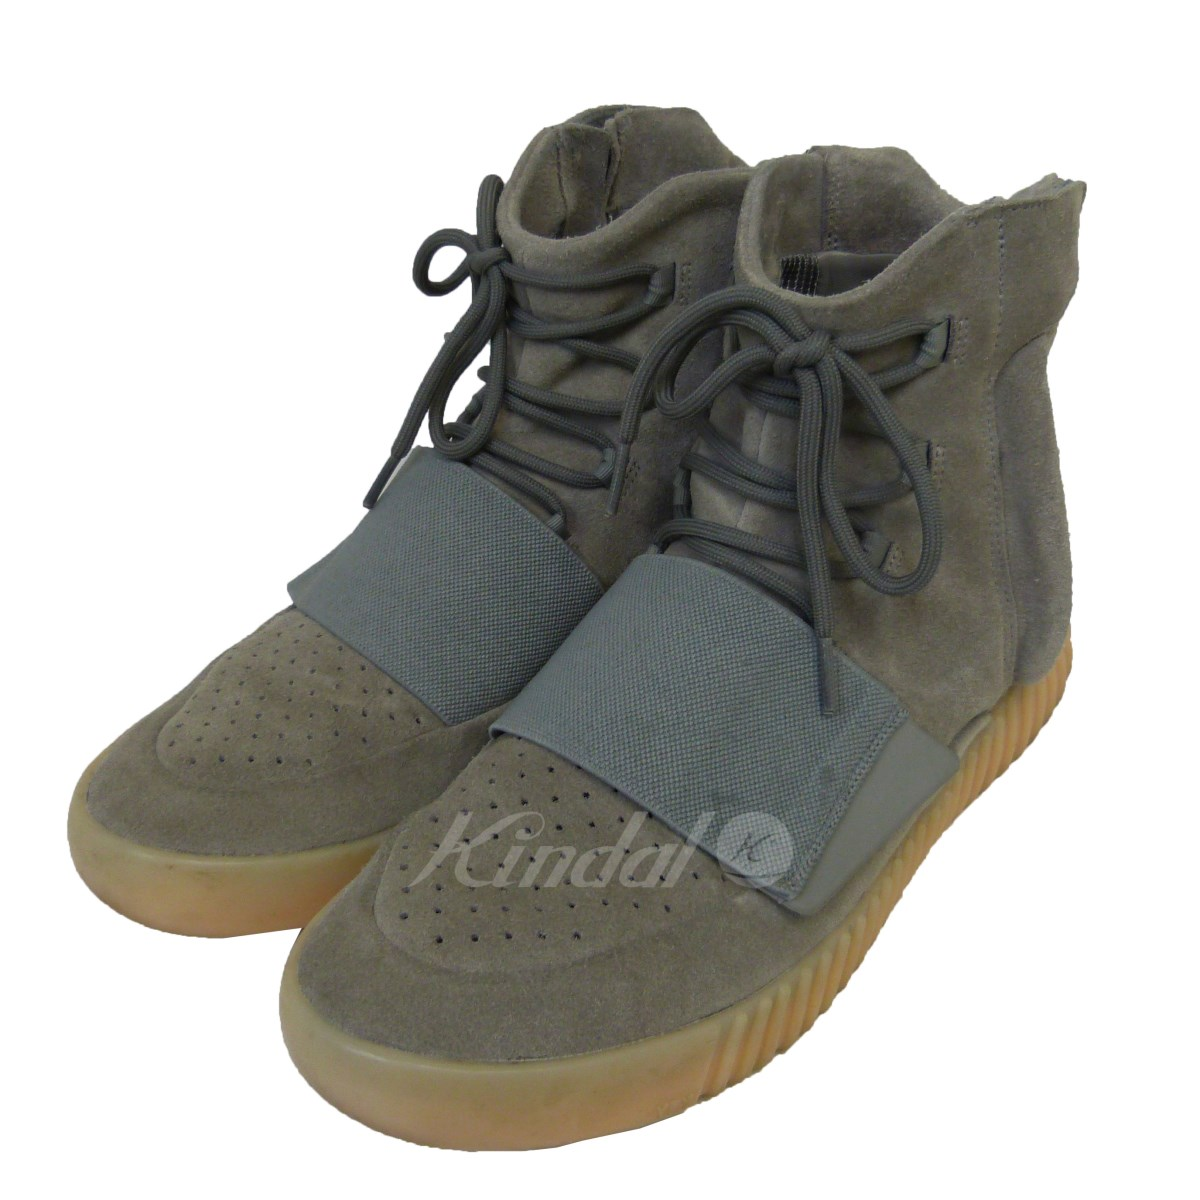 【中古】adidas originais by Kanye West 16SS「YEEZY BOOST 750」ハイカットスニーカー 【送料無料】 【057564】 【KIND1550】